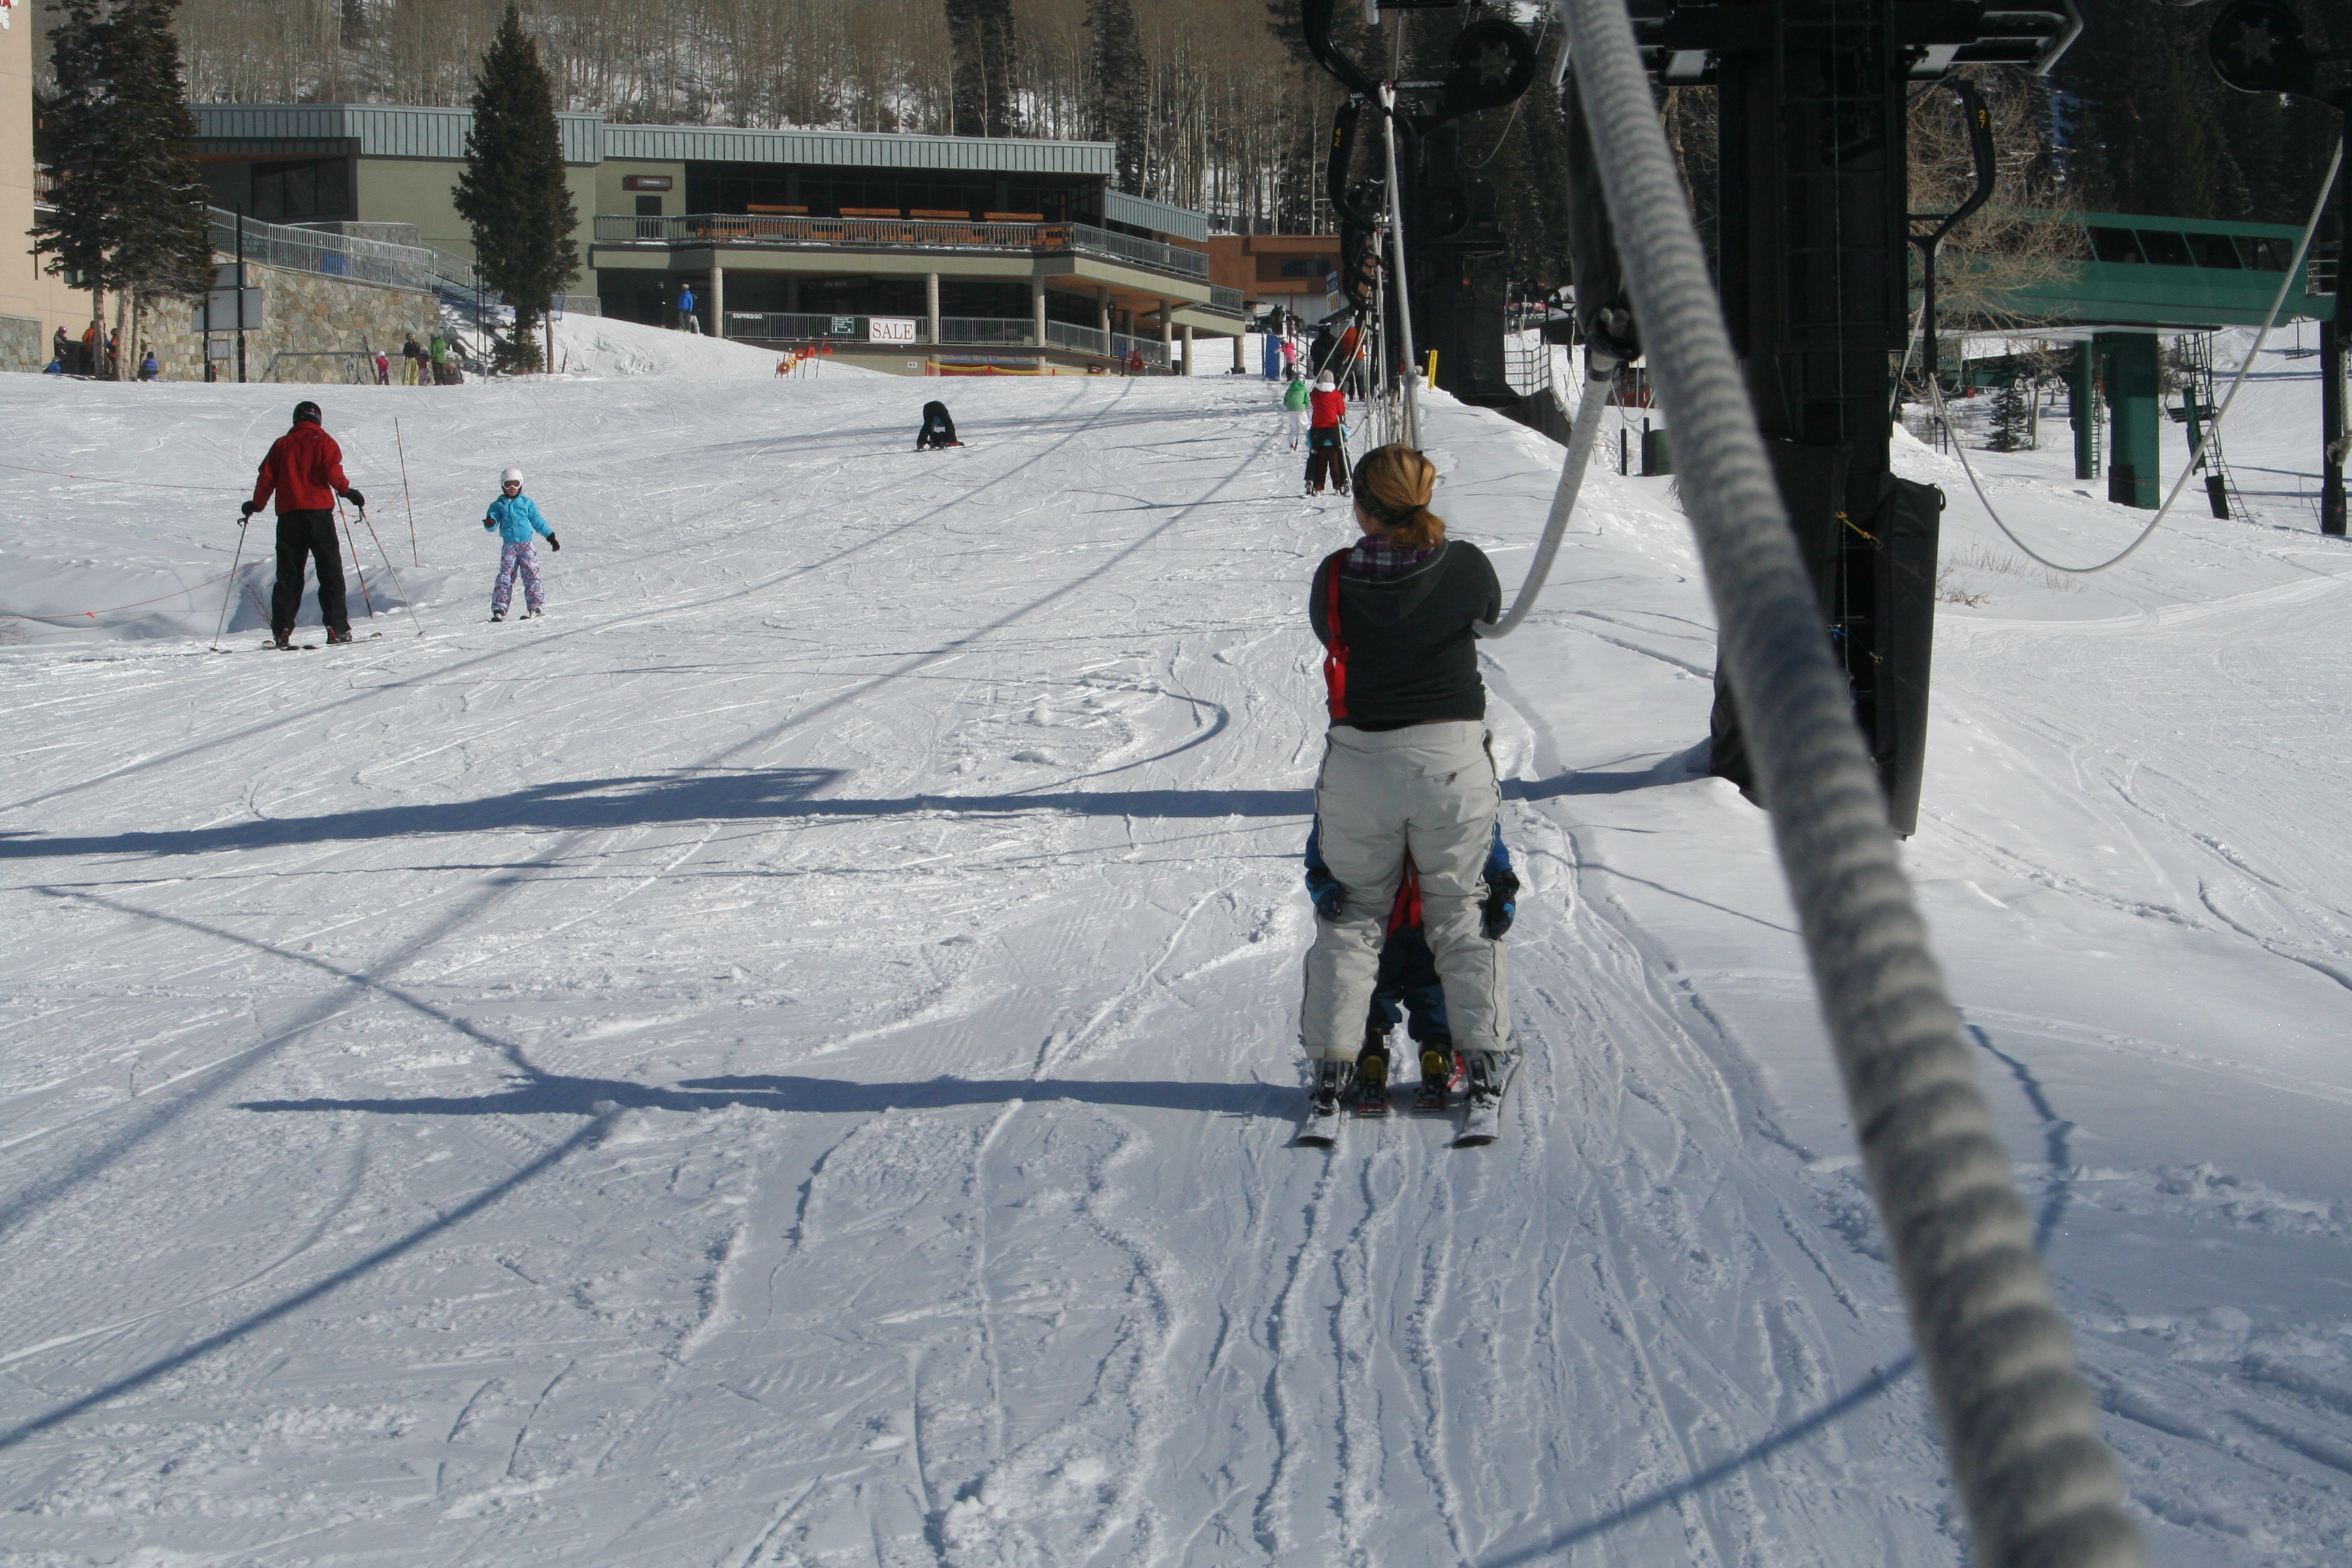 Taking The Rope Tow With Kids The Kid Project